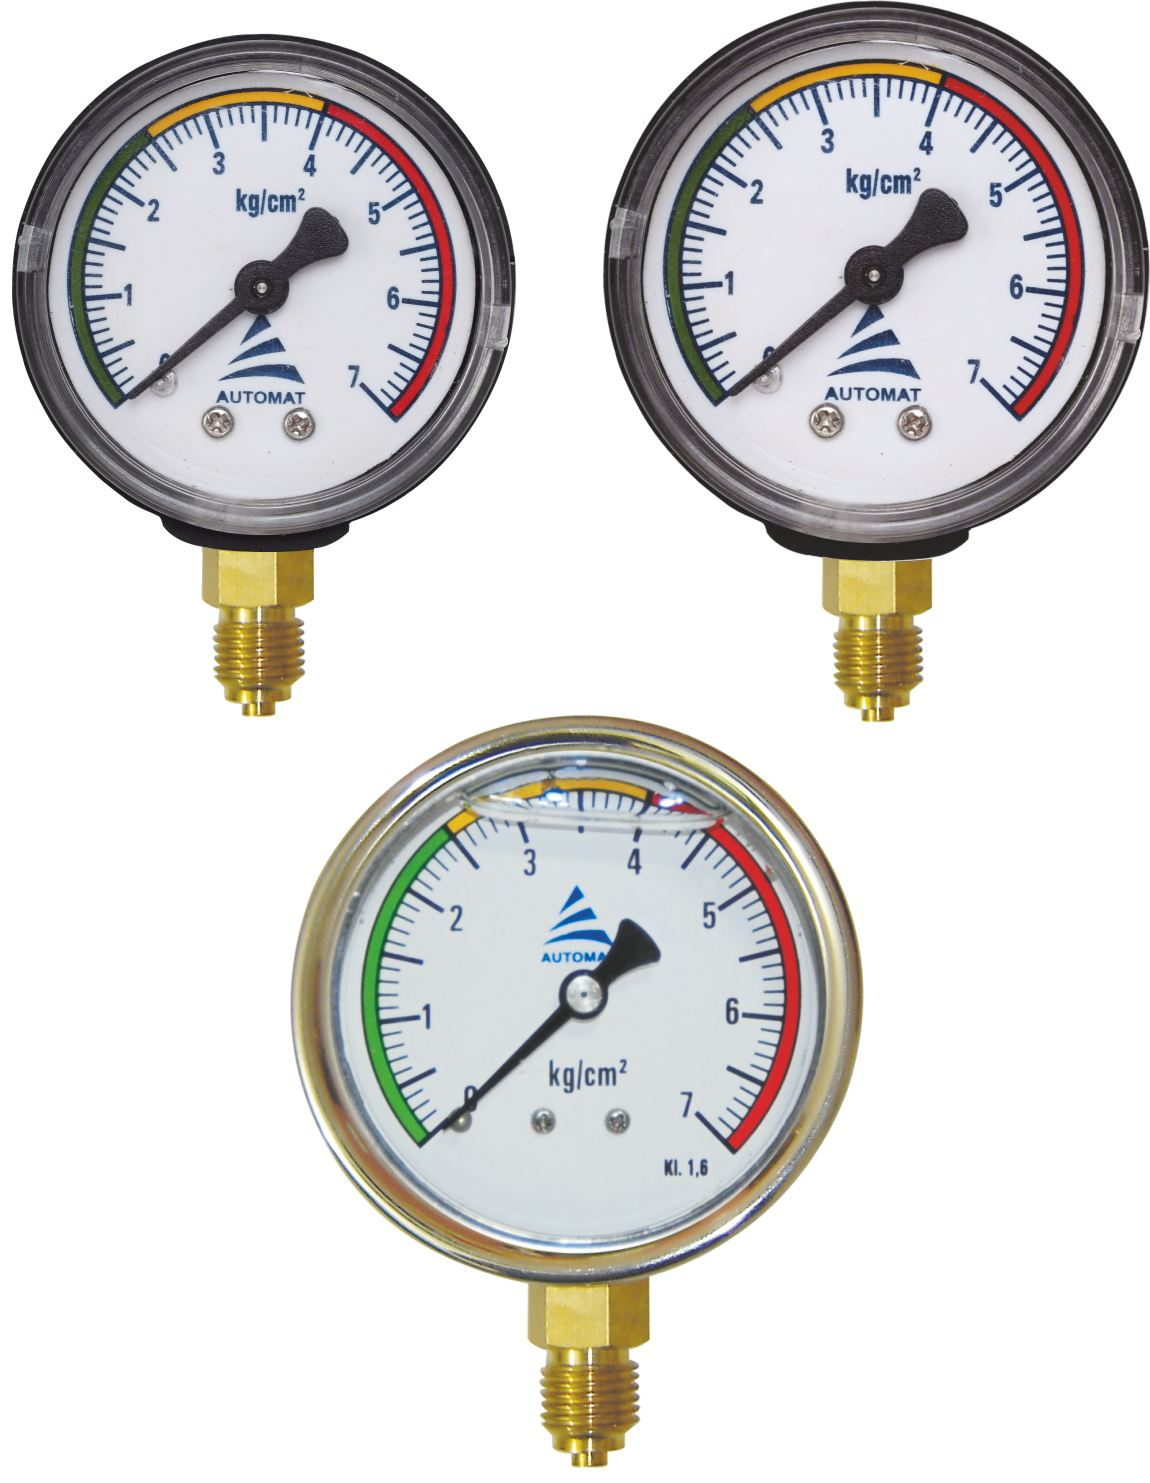 Pressure Gauge Irrigation Accessories AutomatIrrigation